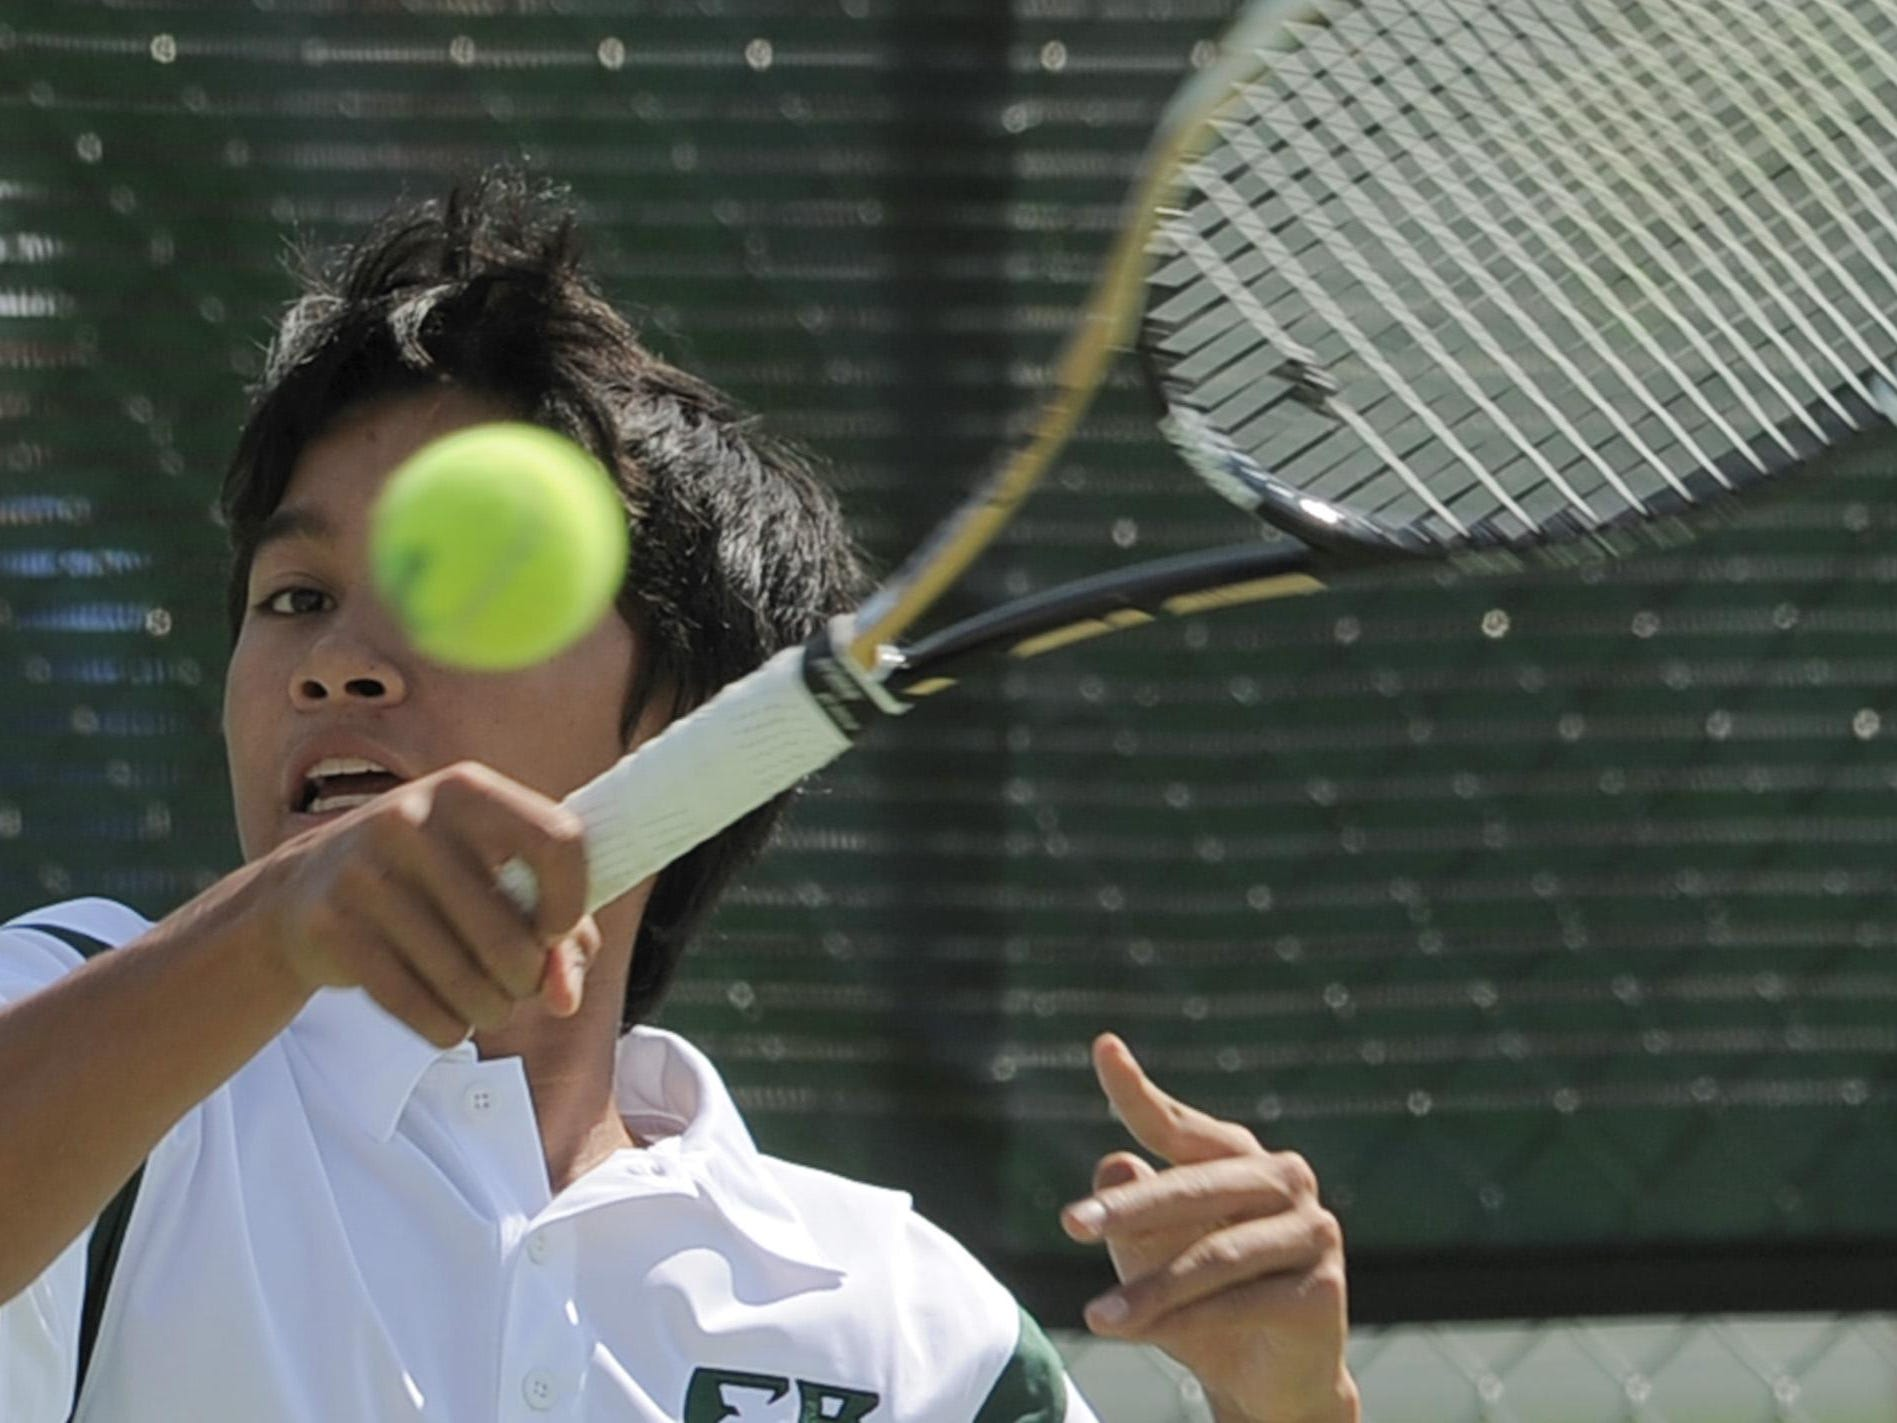 Fossil Ridge High School's Gabe Pagat, pictured in a file photo, and Tristan Faust won a first-round state tennis match Thursday.